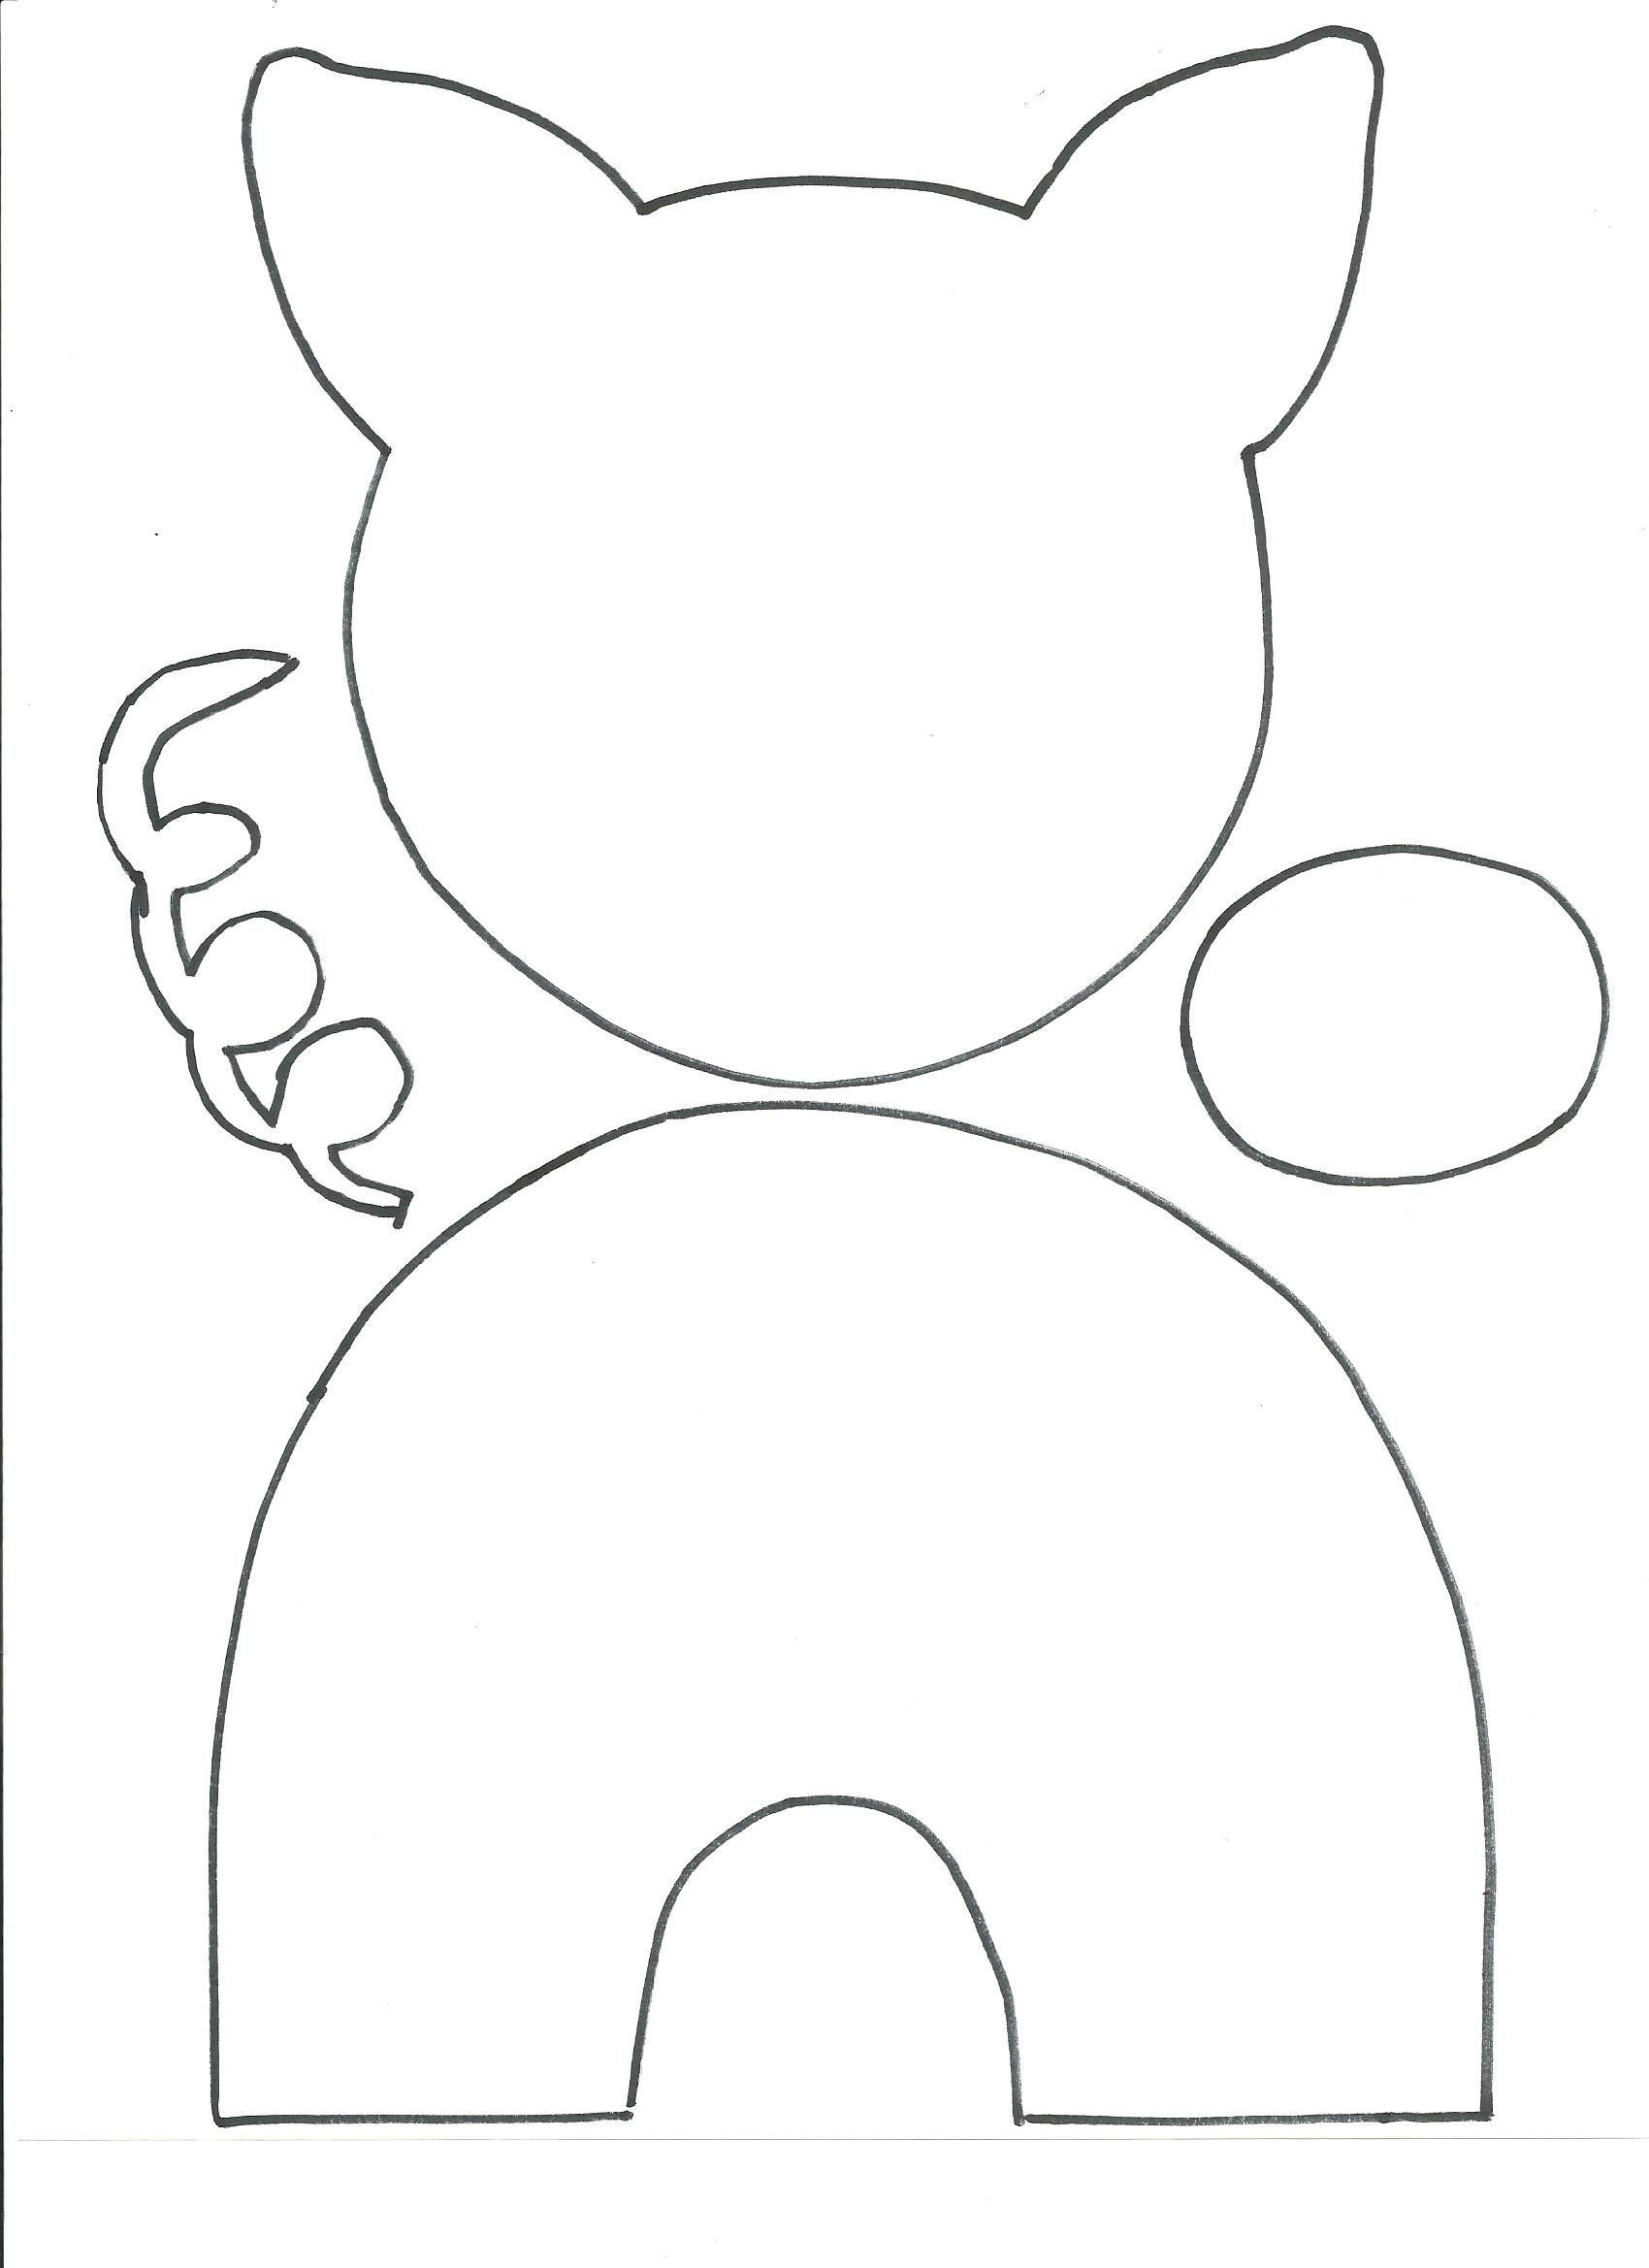 Preschool Coloring Sheets For The 3 Little Pigs Paper Plate Pig  Pin by Carmel Reilly on Kindy